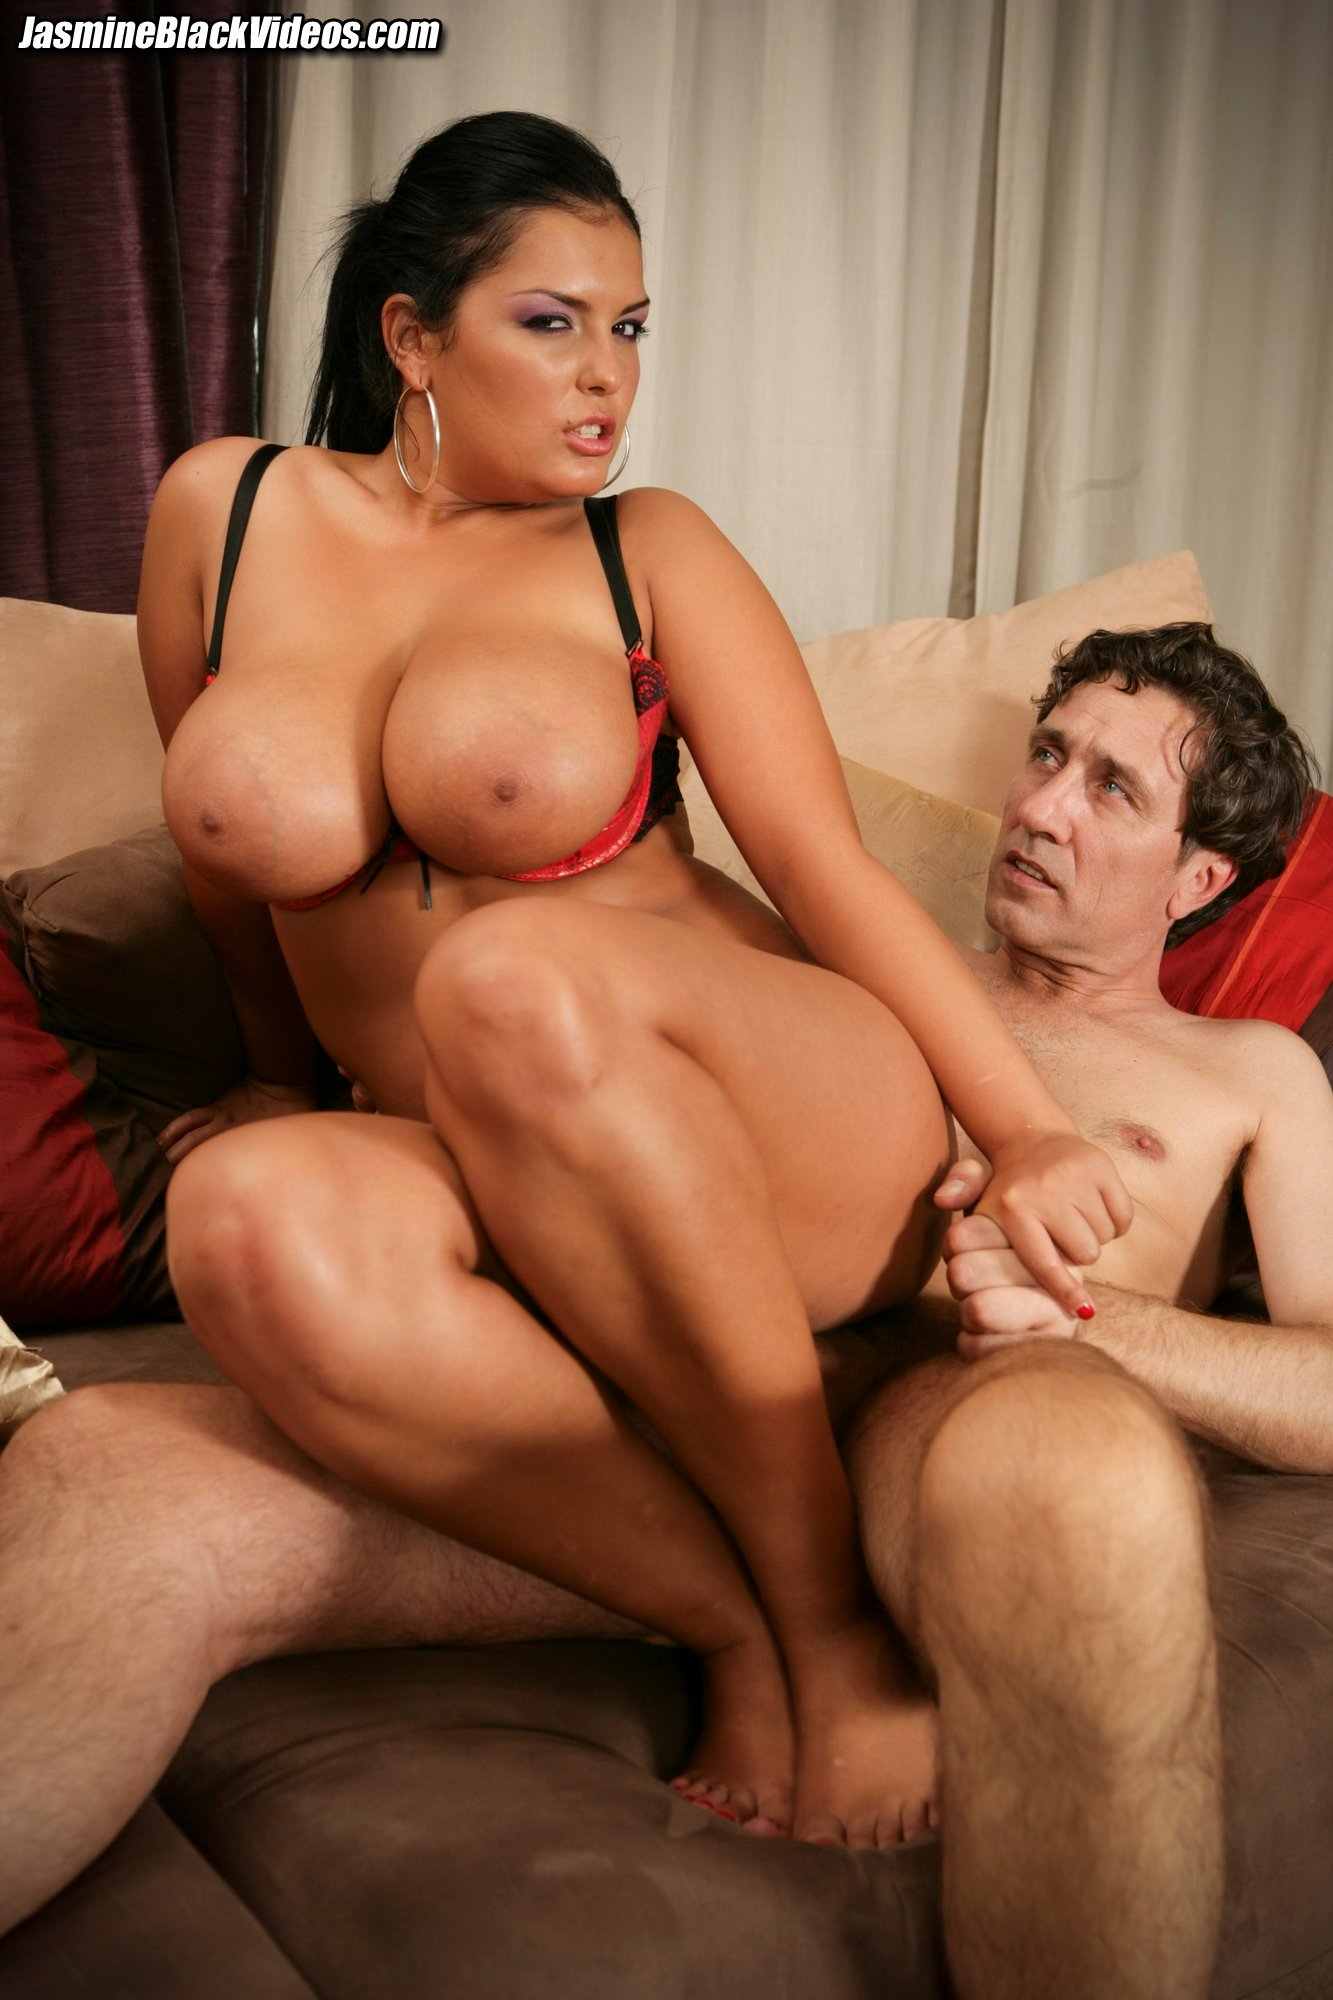 Jasmine Black Takes Steve Holmes 10 Inch Dick Up Her Ass -6539